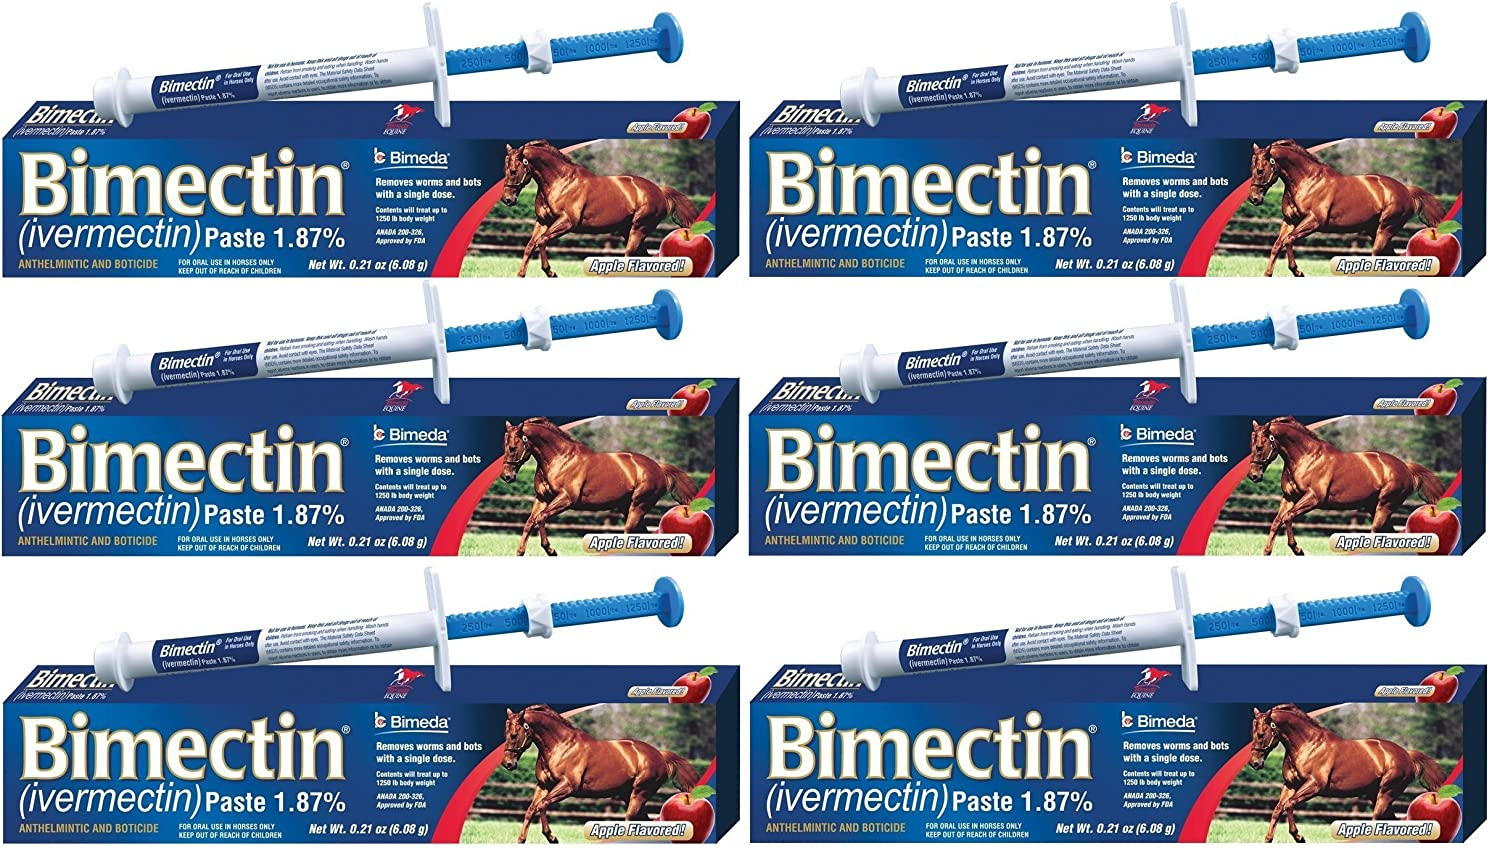 Bimectin Ivermectin Paste Horse Wormer (1.87 Ivermectin) - 6 DOSES, Model:, Home & Outdoor Store Myhoovesandpaws